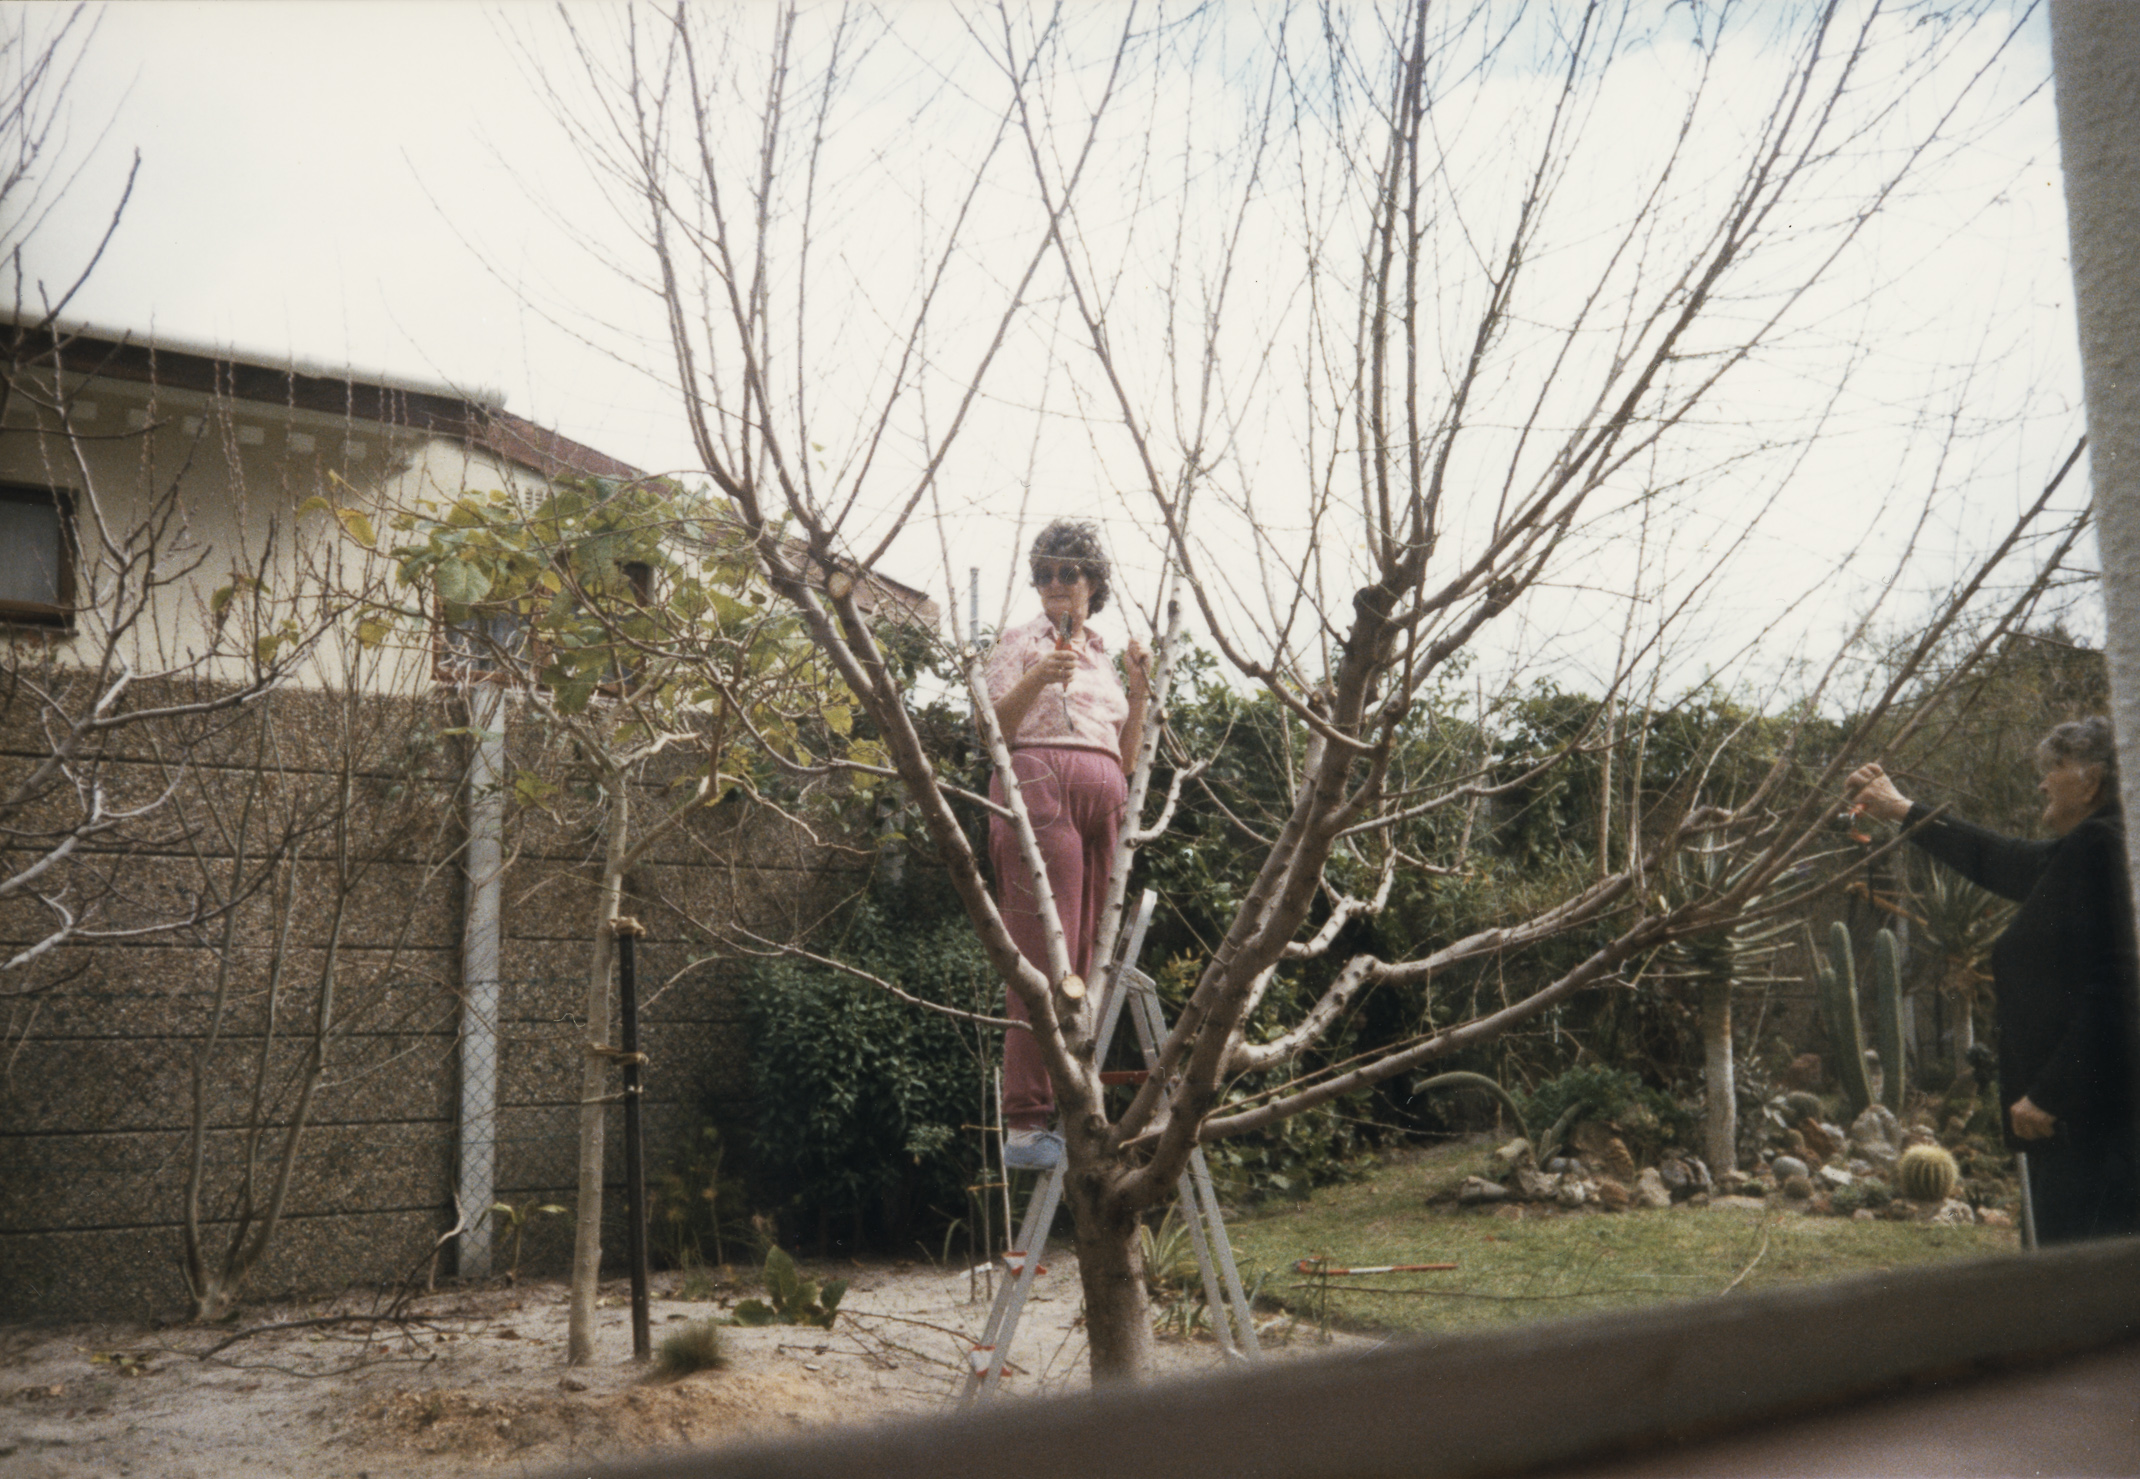 My Emotional Photographic Exploration Of The Loss Of My Grandparents' Home.